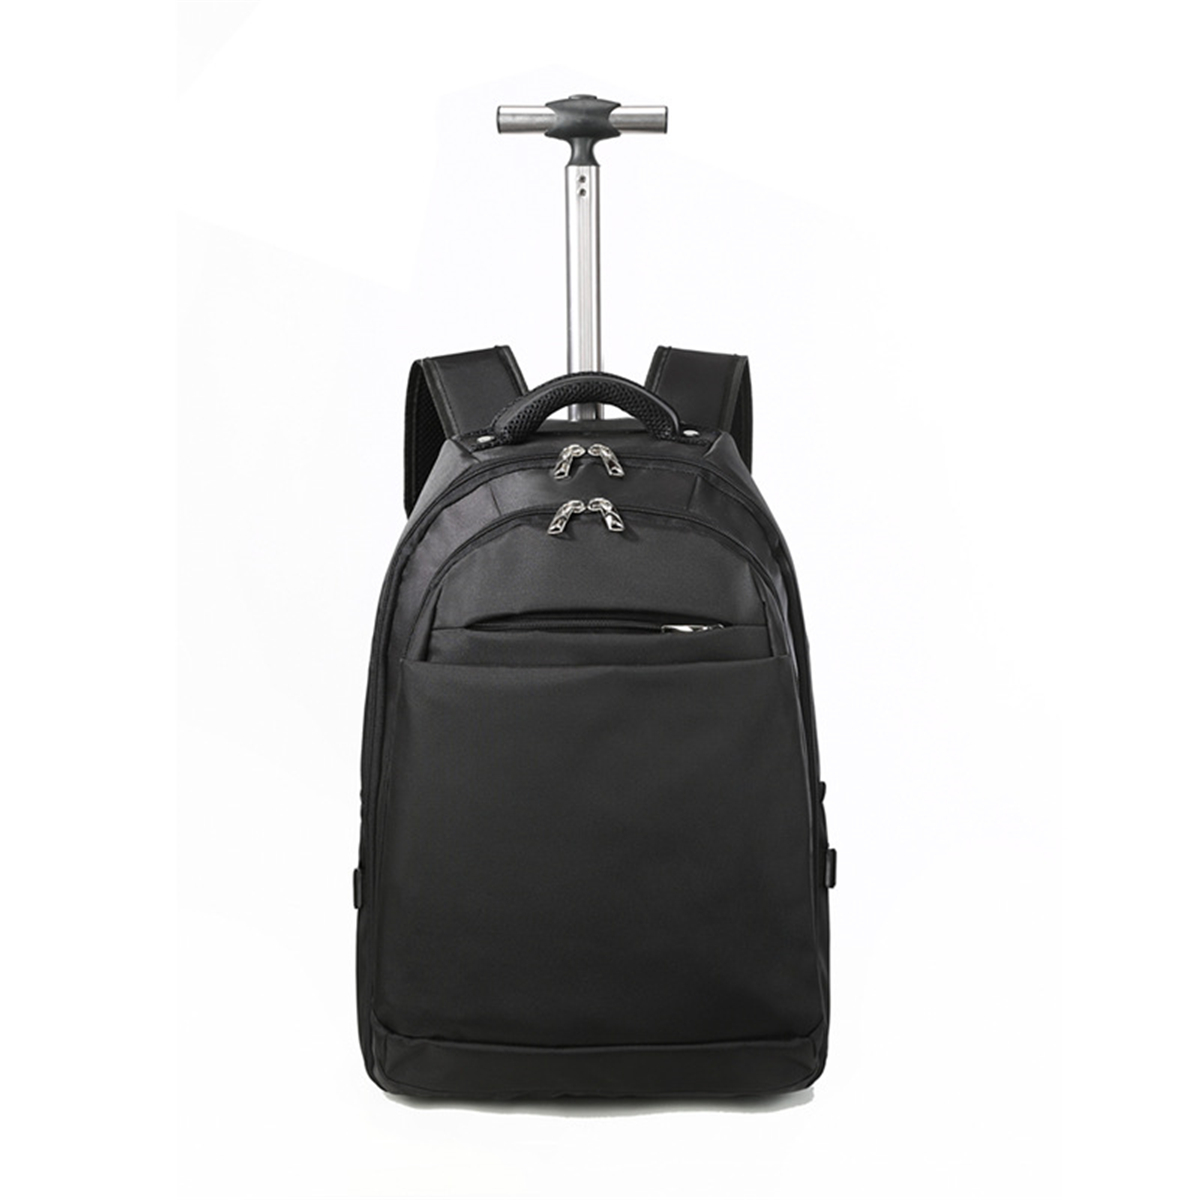 20'' Rolling Luggage Travel Backpack Shoulder Wheeled Backpacks Large Travel Bag Wheels For Suitcase Trolley Carry on Duffle Bag